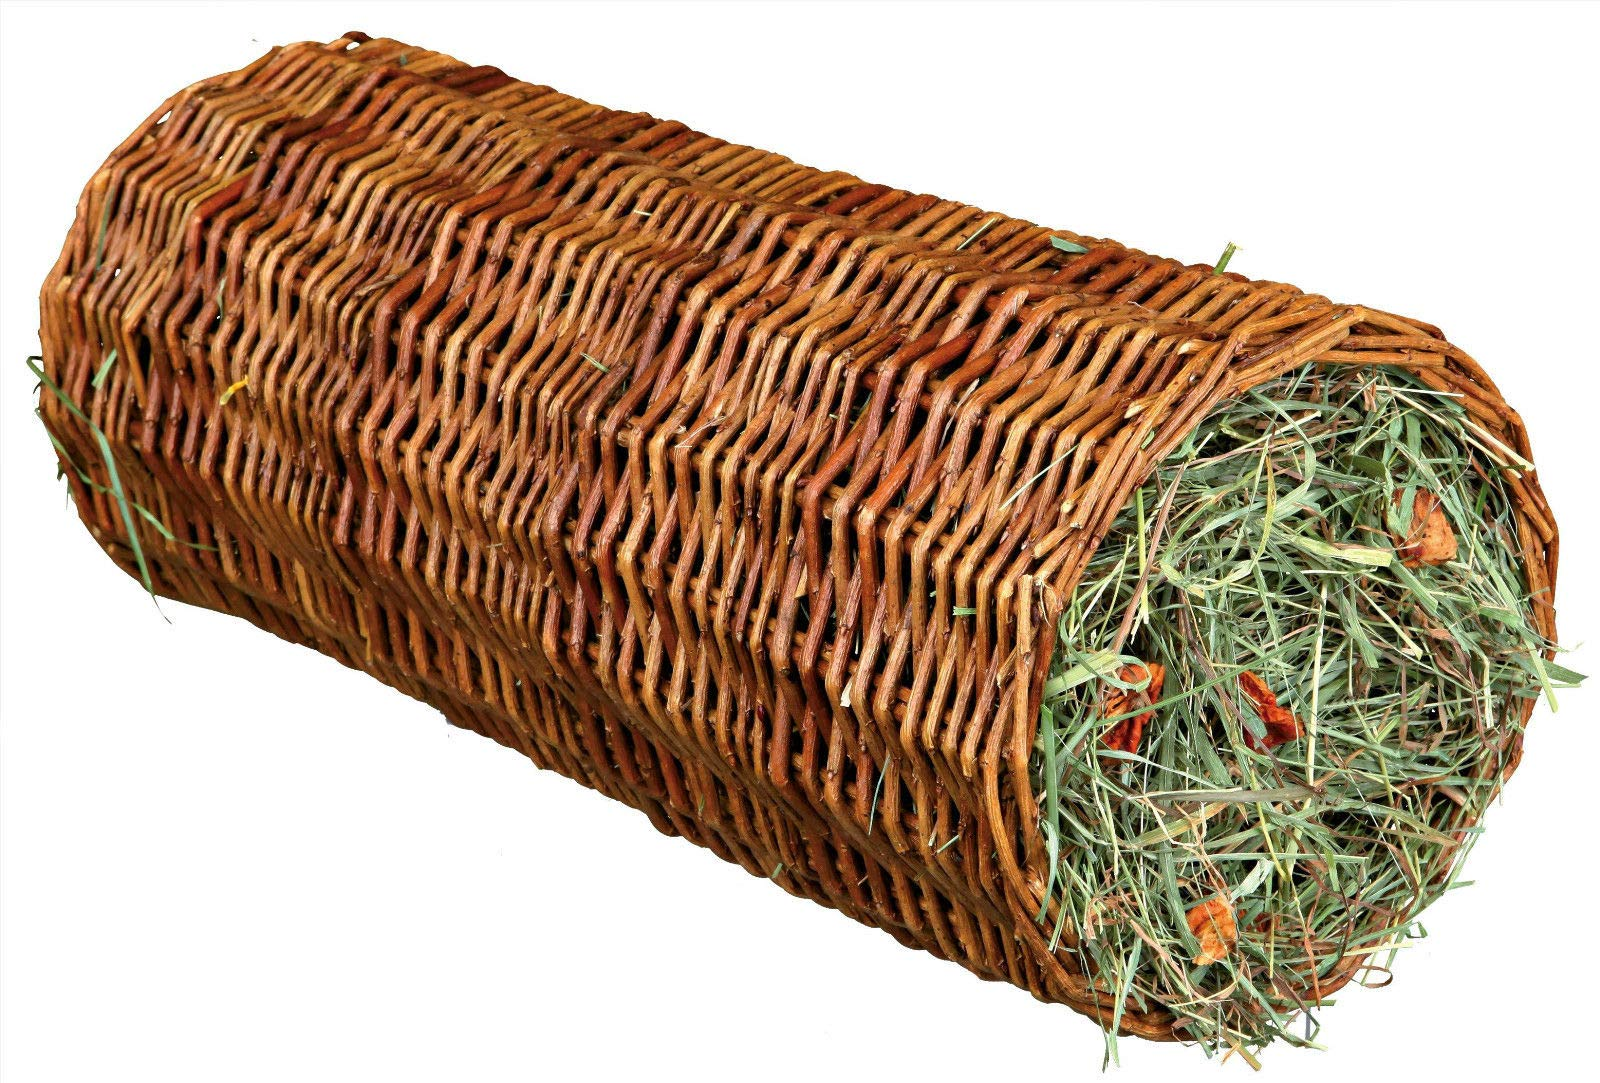 Trixie 60776聽Wicker Tunnel for Guinea Pigs 15聽脳 33聽cm 110聽g60776 by Trixie